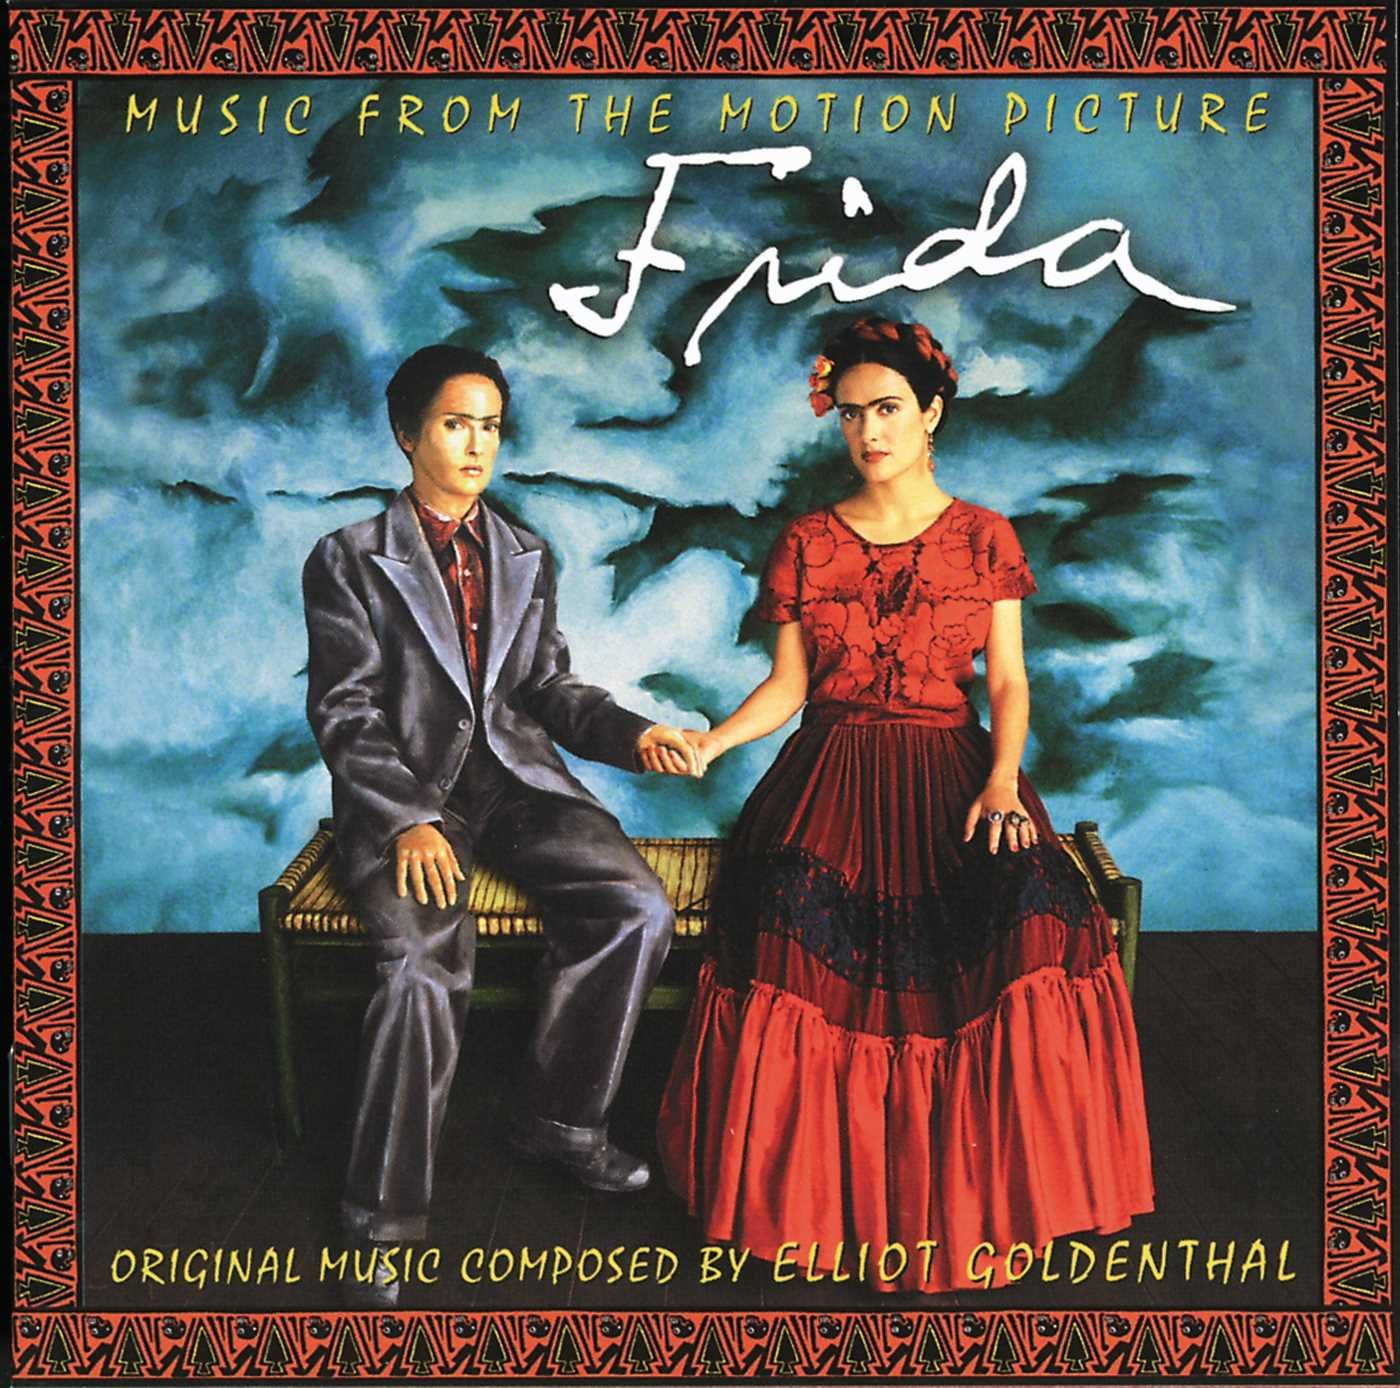 Various Artists - Frida (Soundtrack) [LP] (180 Gram, 20-page booklet, download) - Urban Vinyl | Records, Headphones, and more.